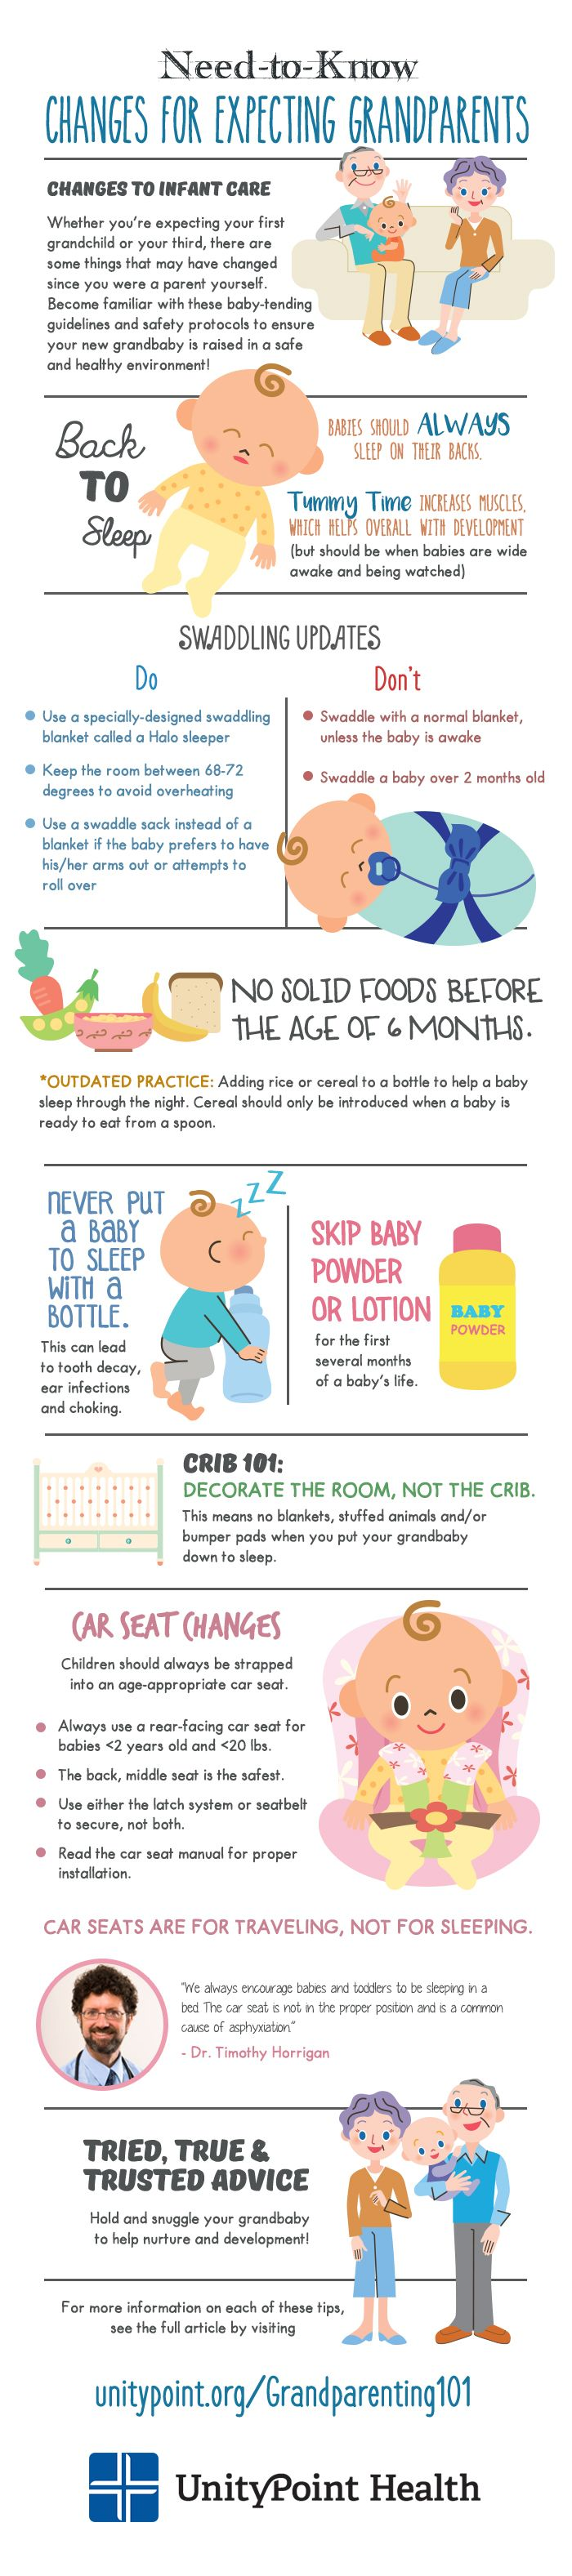 Whether you're expecting your first grandchild or your third, there are some things that may have changed since you were a parent yourself.